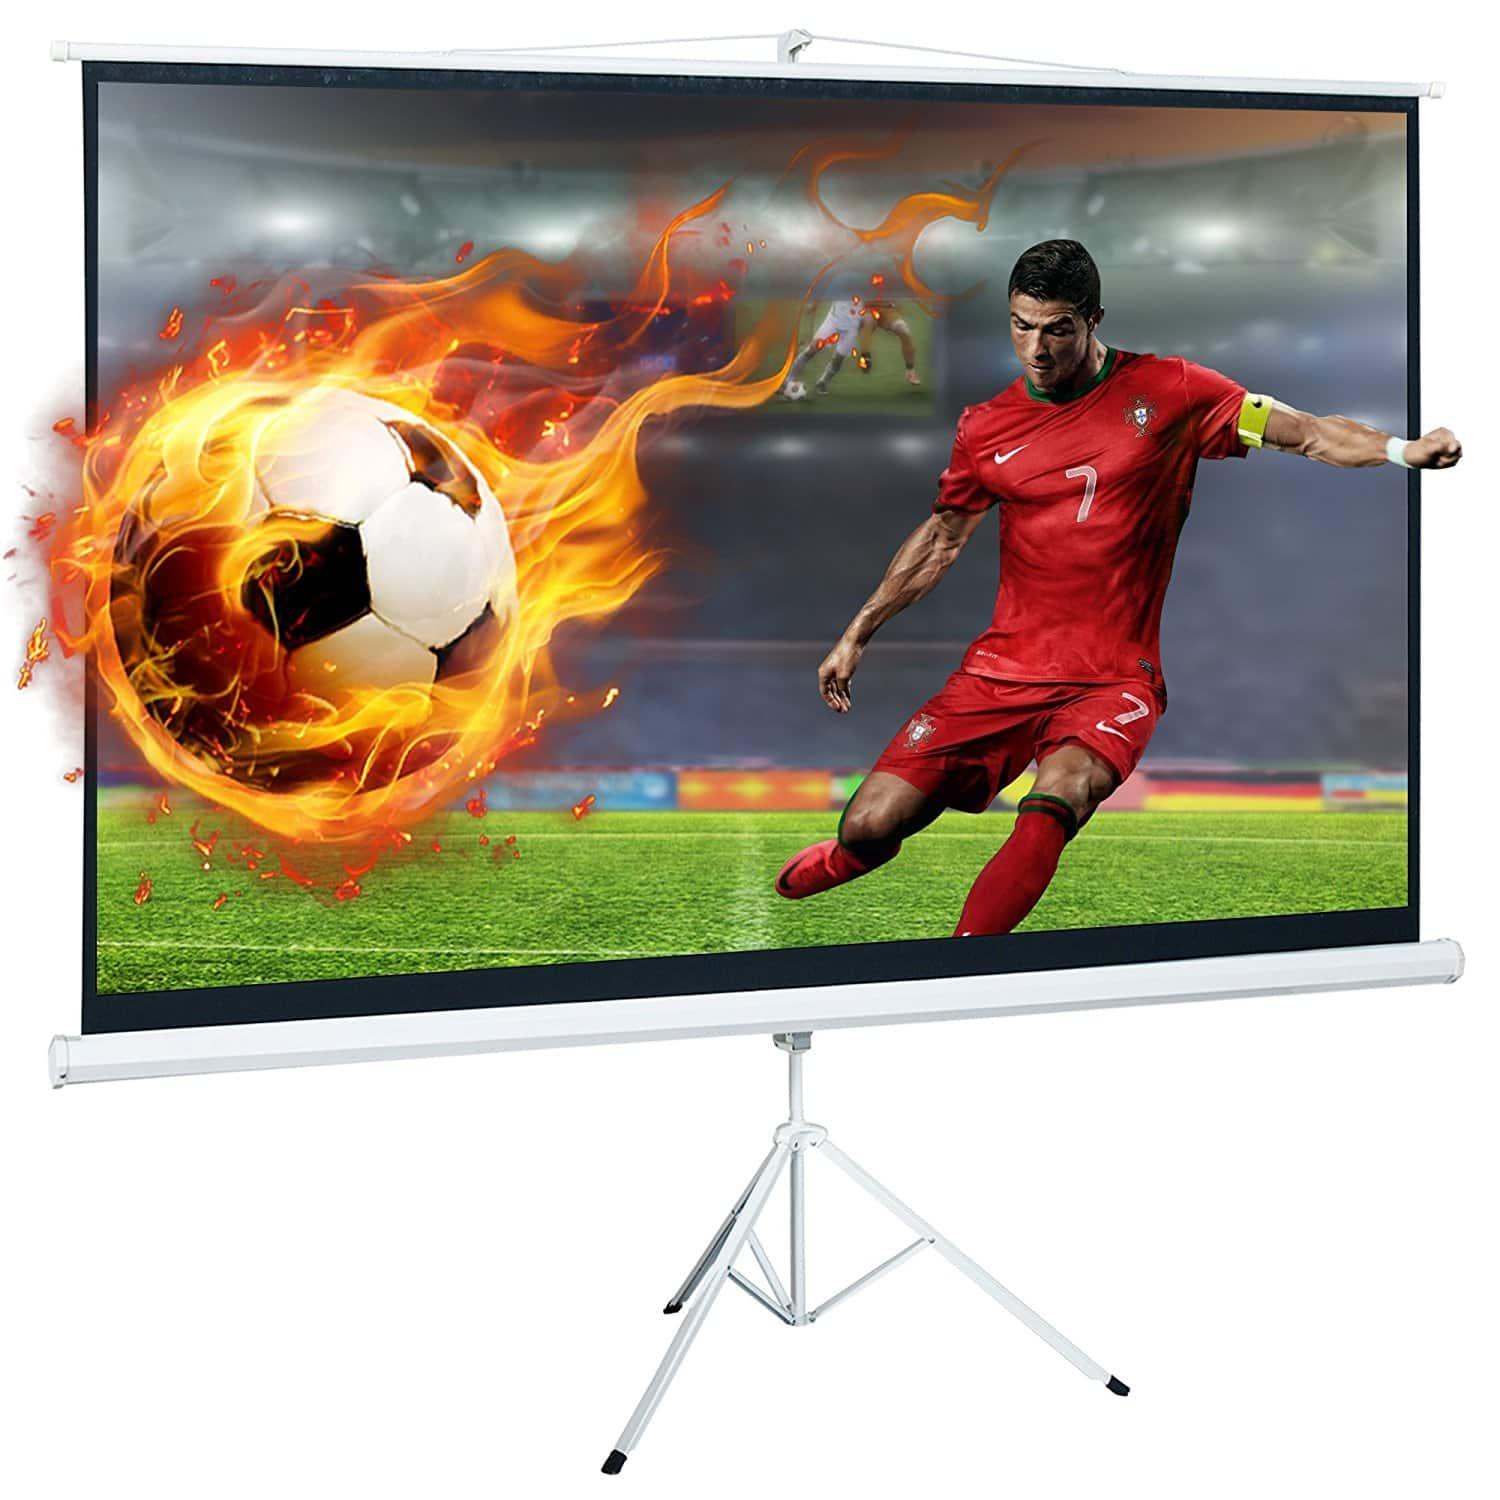 100 Inch 16:9 Portable Pull Up Tripod Projector Screen @Amazon $43.99+ Free Shipping